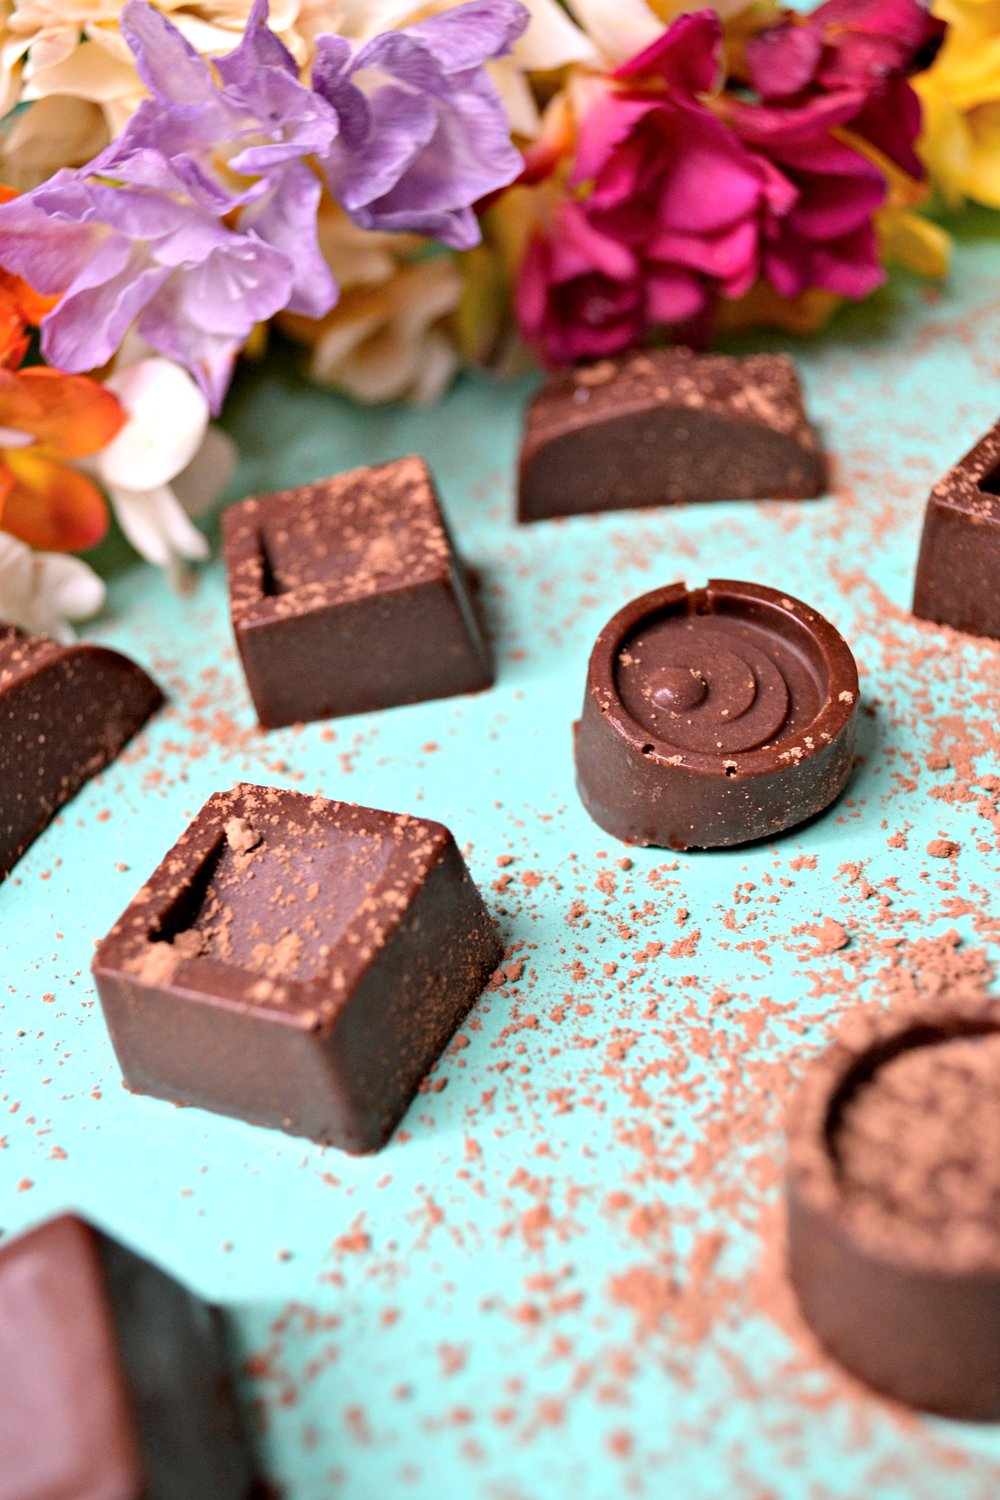 Vegan chocolate recipe | The Flourishing Pantry